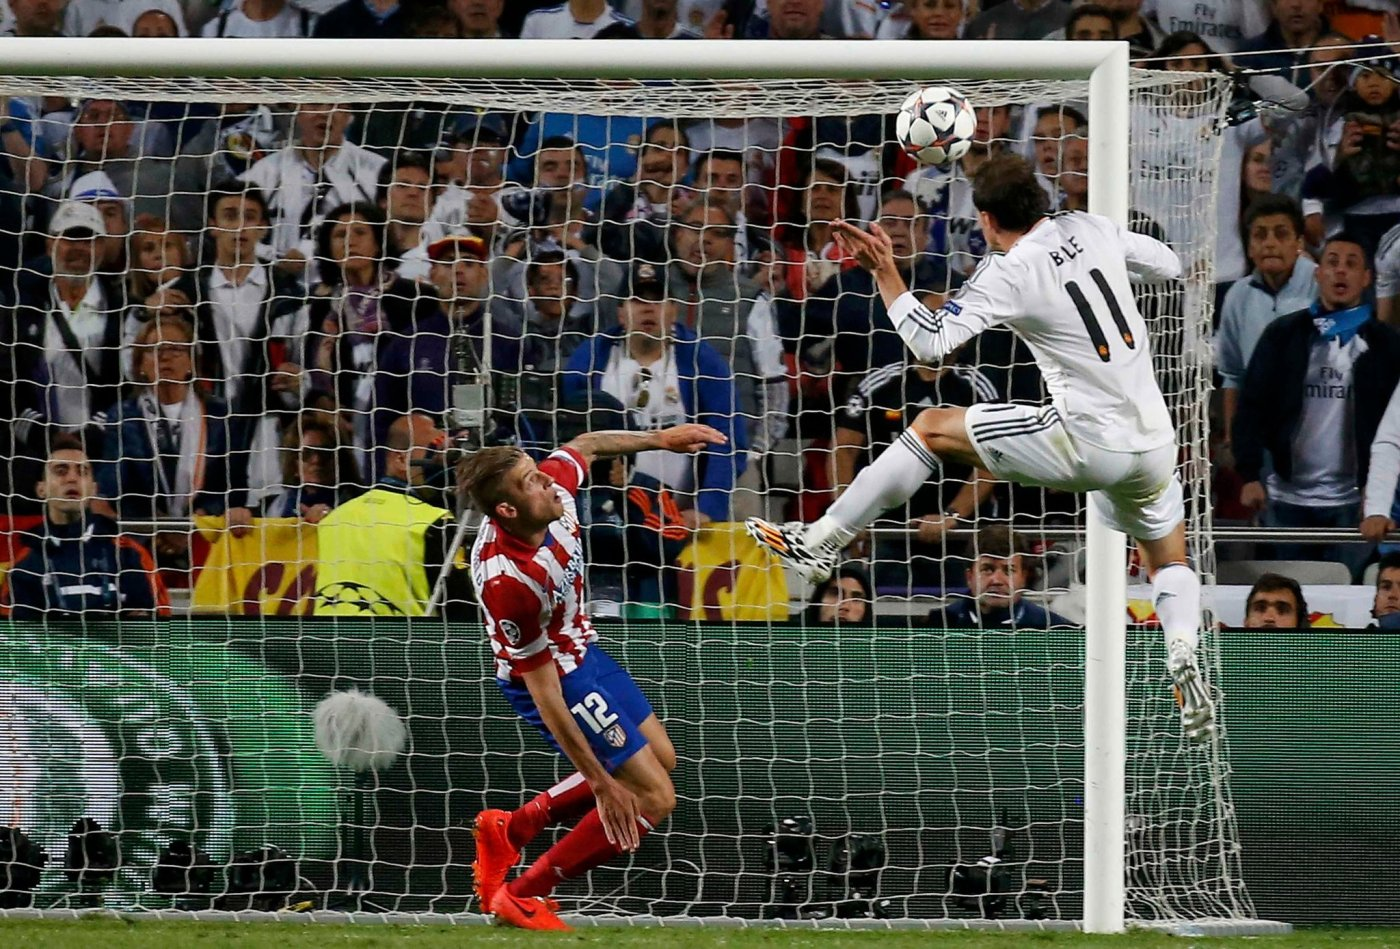 Gareth Bale's Goal Helps Lift Real Madrid to Its 10th Champions League  Title - The New York Times